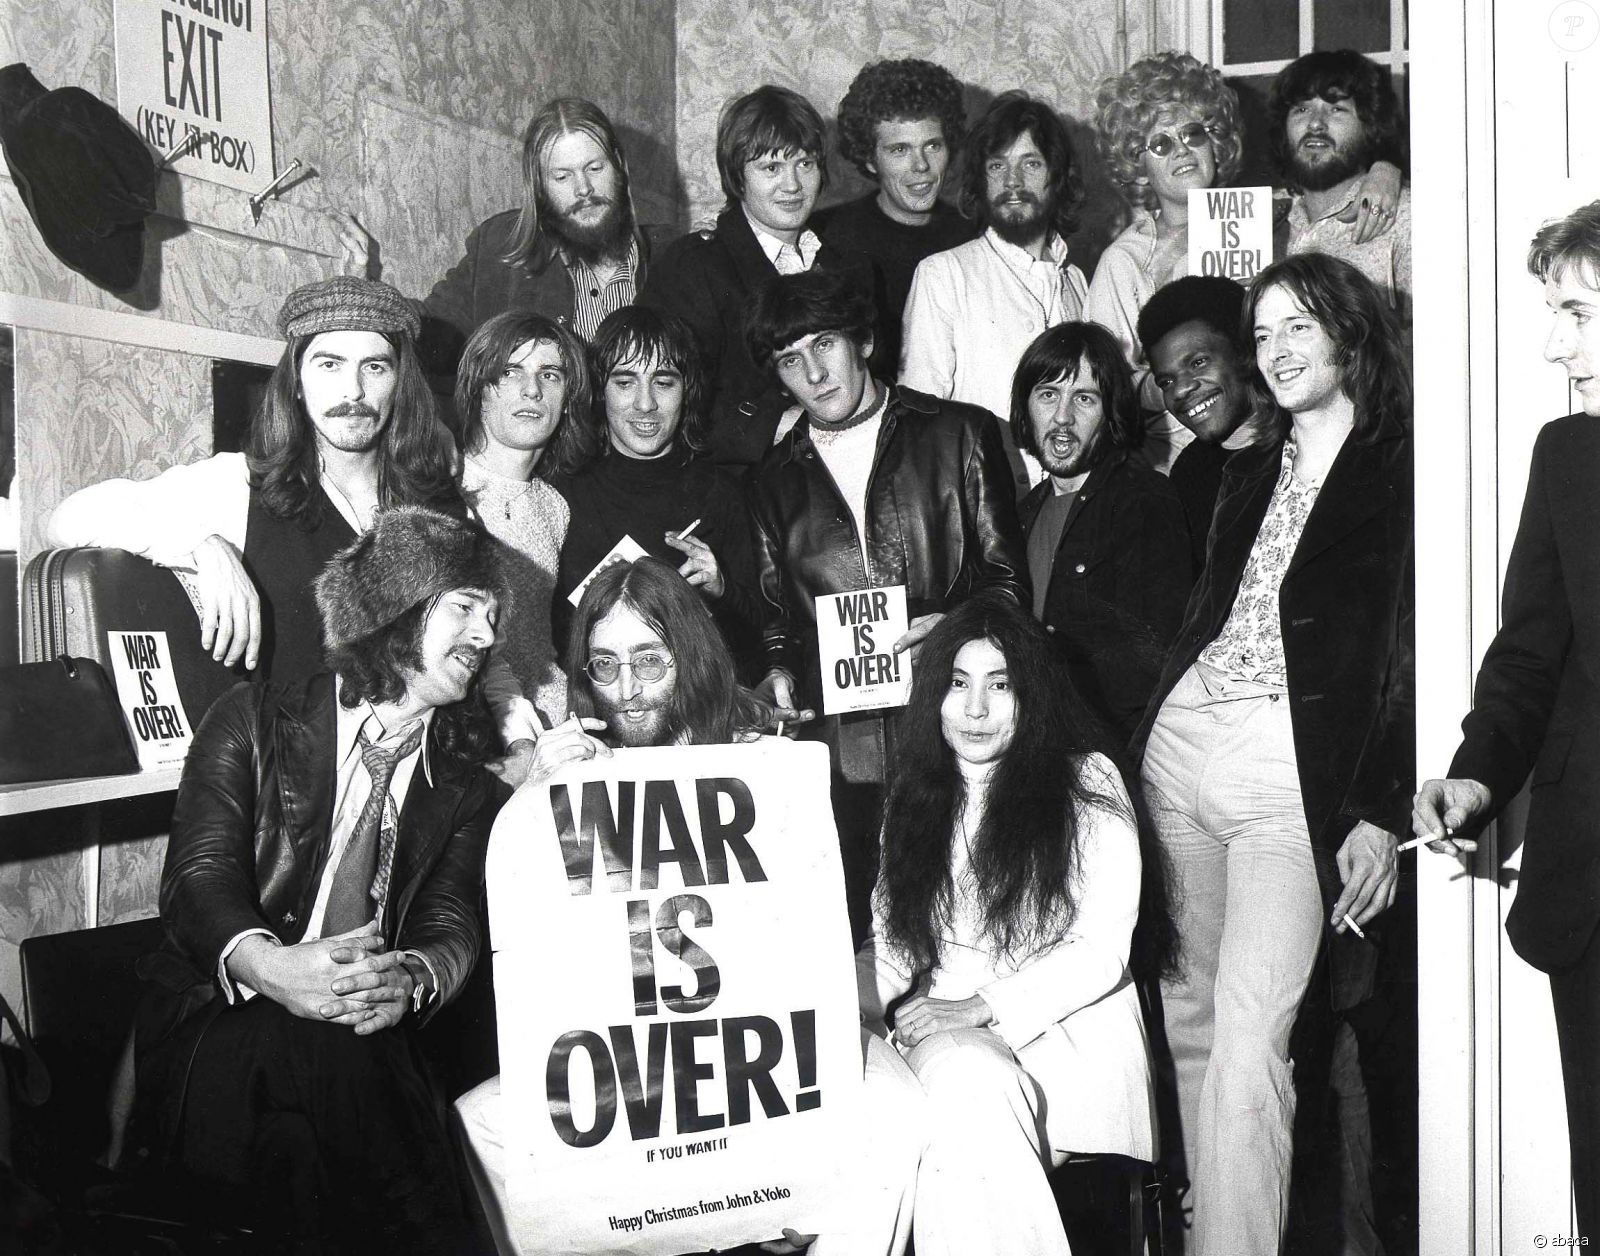 The War Is Over Campaign Was Launched On 15 December 1969 At The Peace For Christmas Concert A Benefit For Unicef John Lennon The Beatles John Lennon Beatles